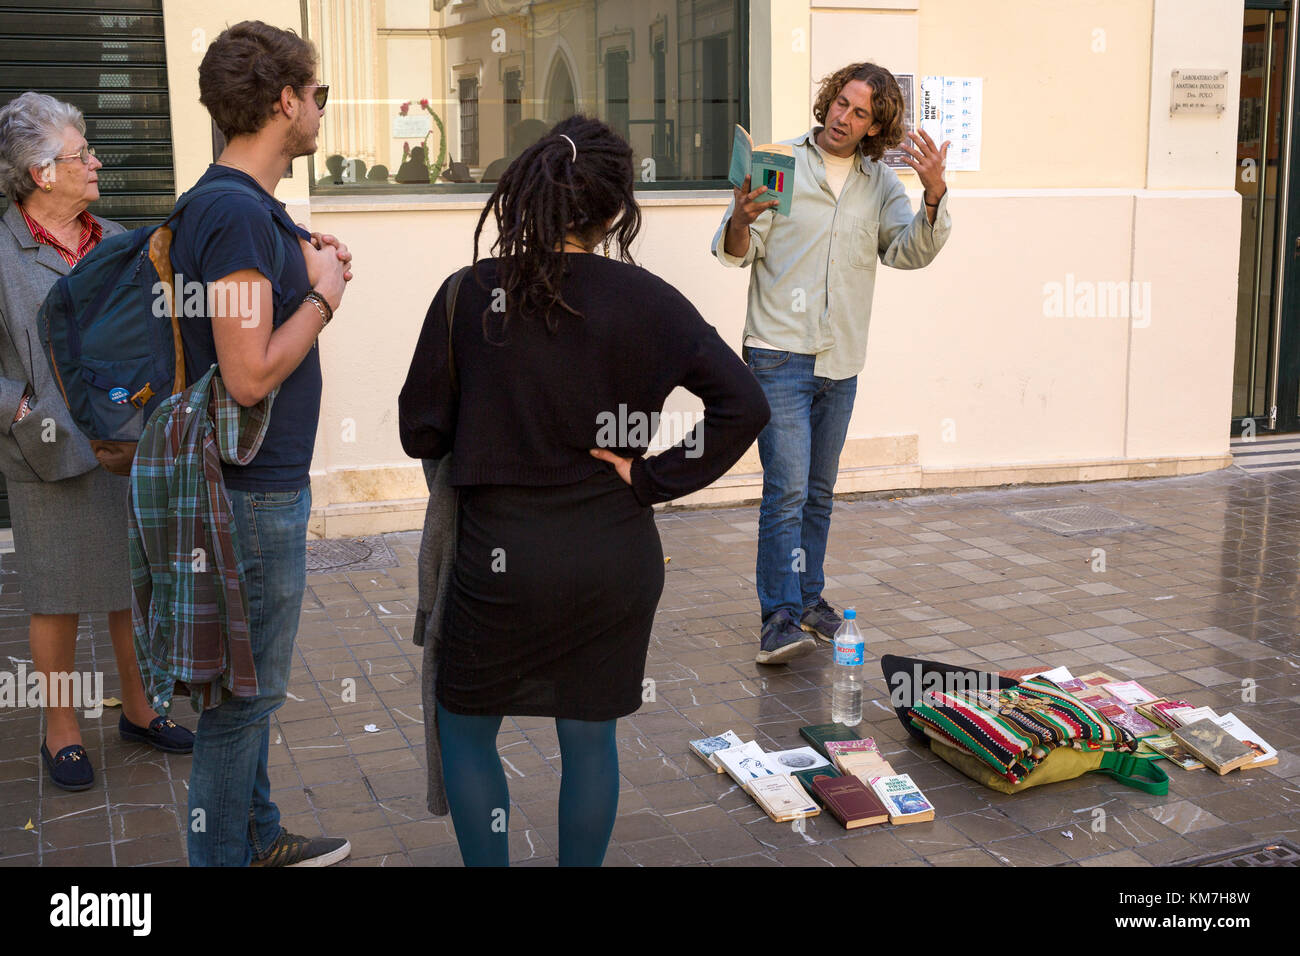 Image result for poetry busking paintings